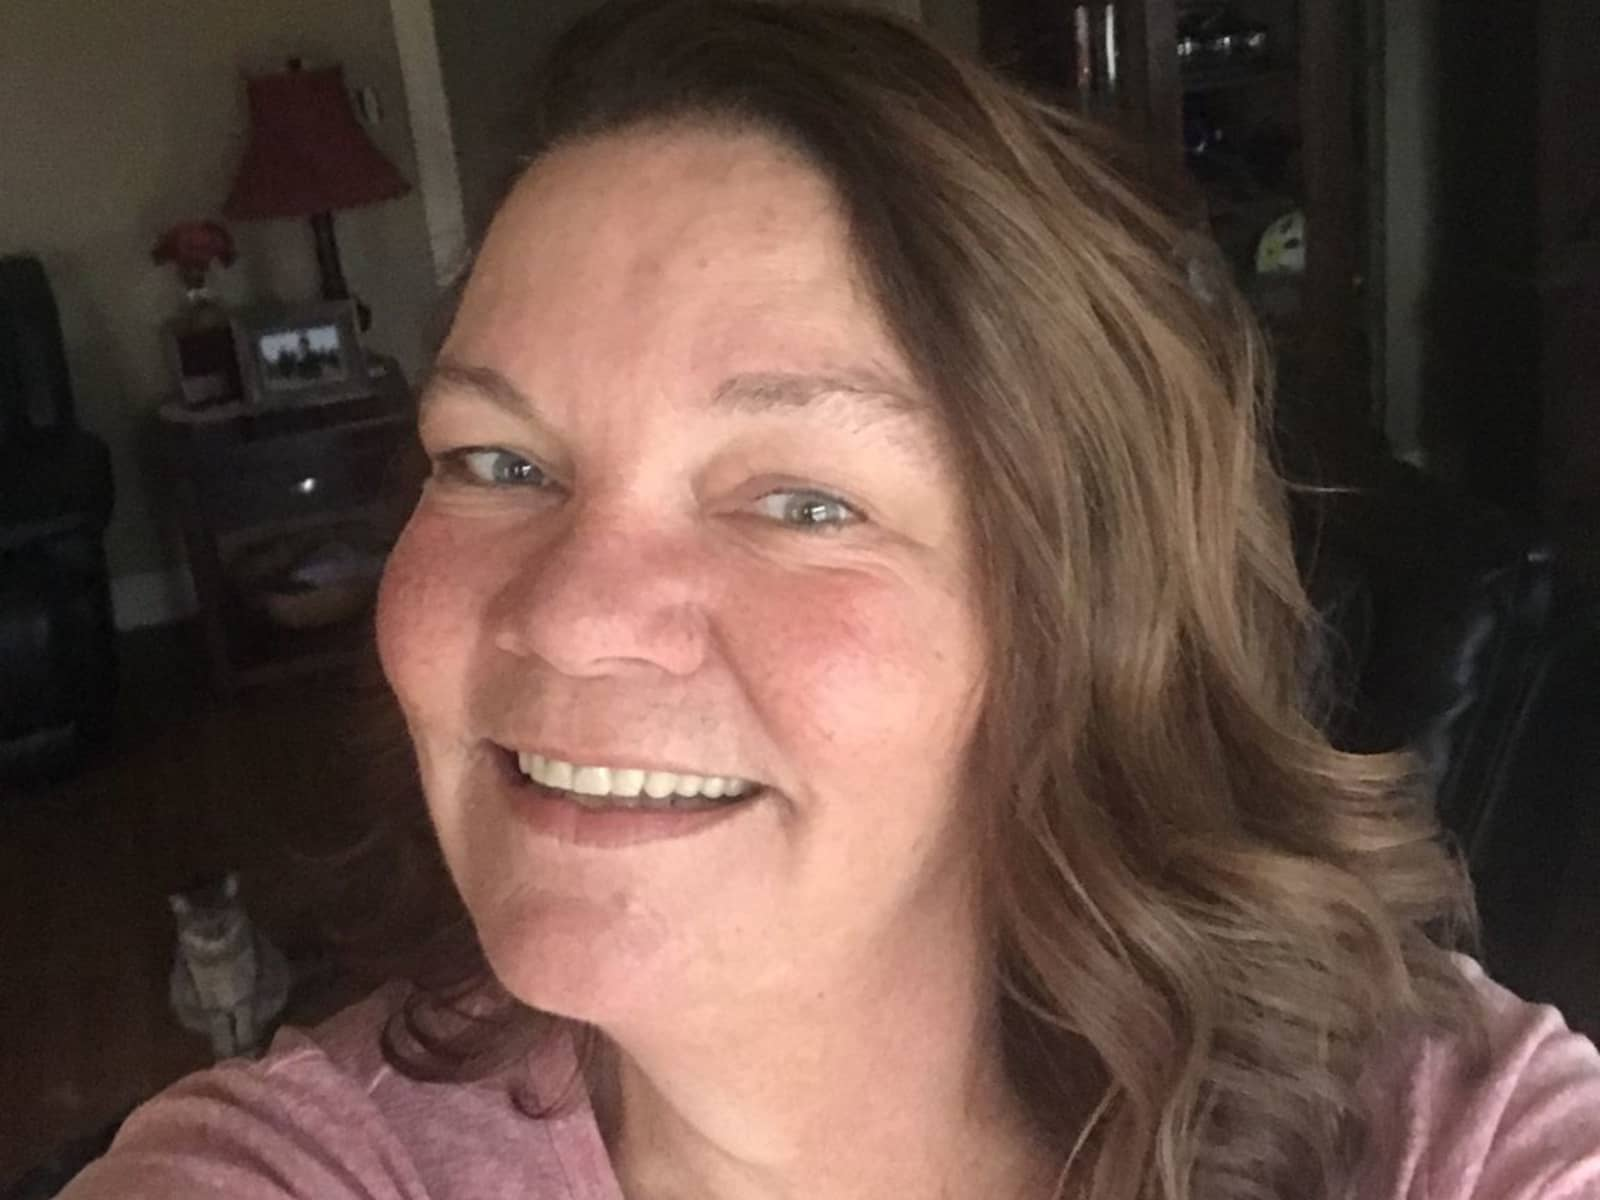 Teresa from Norman, Oklahoma, United States